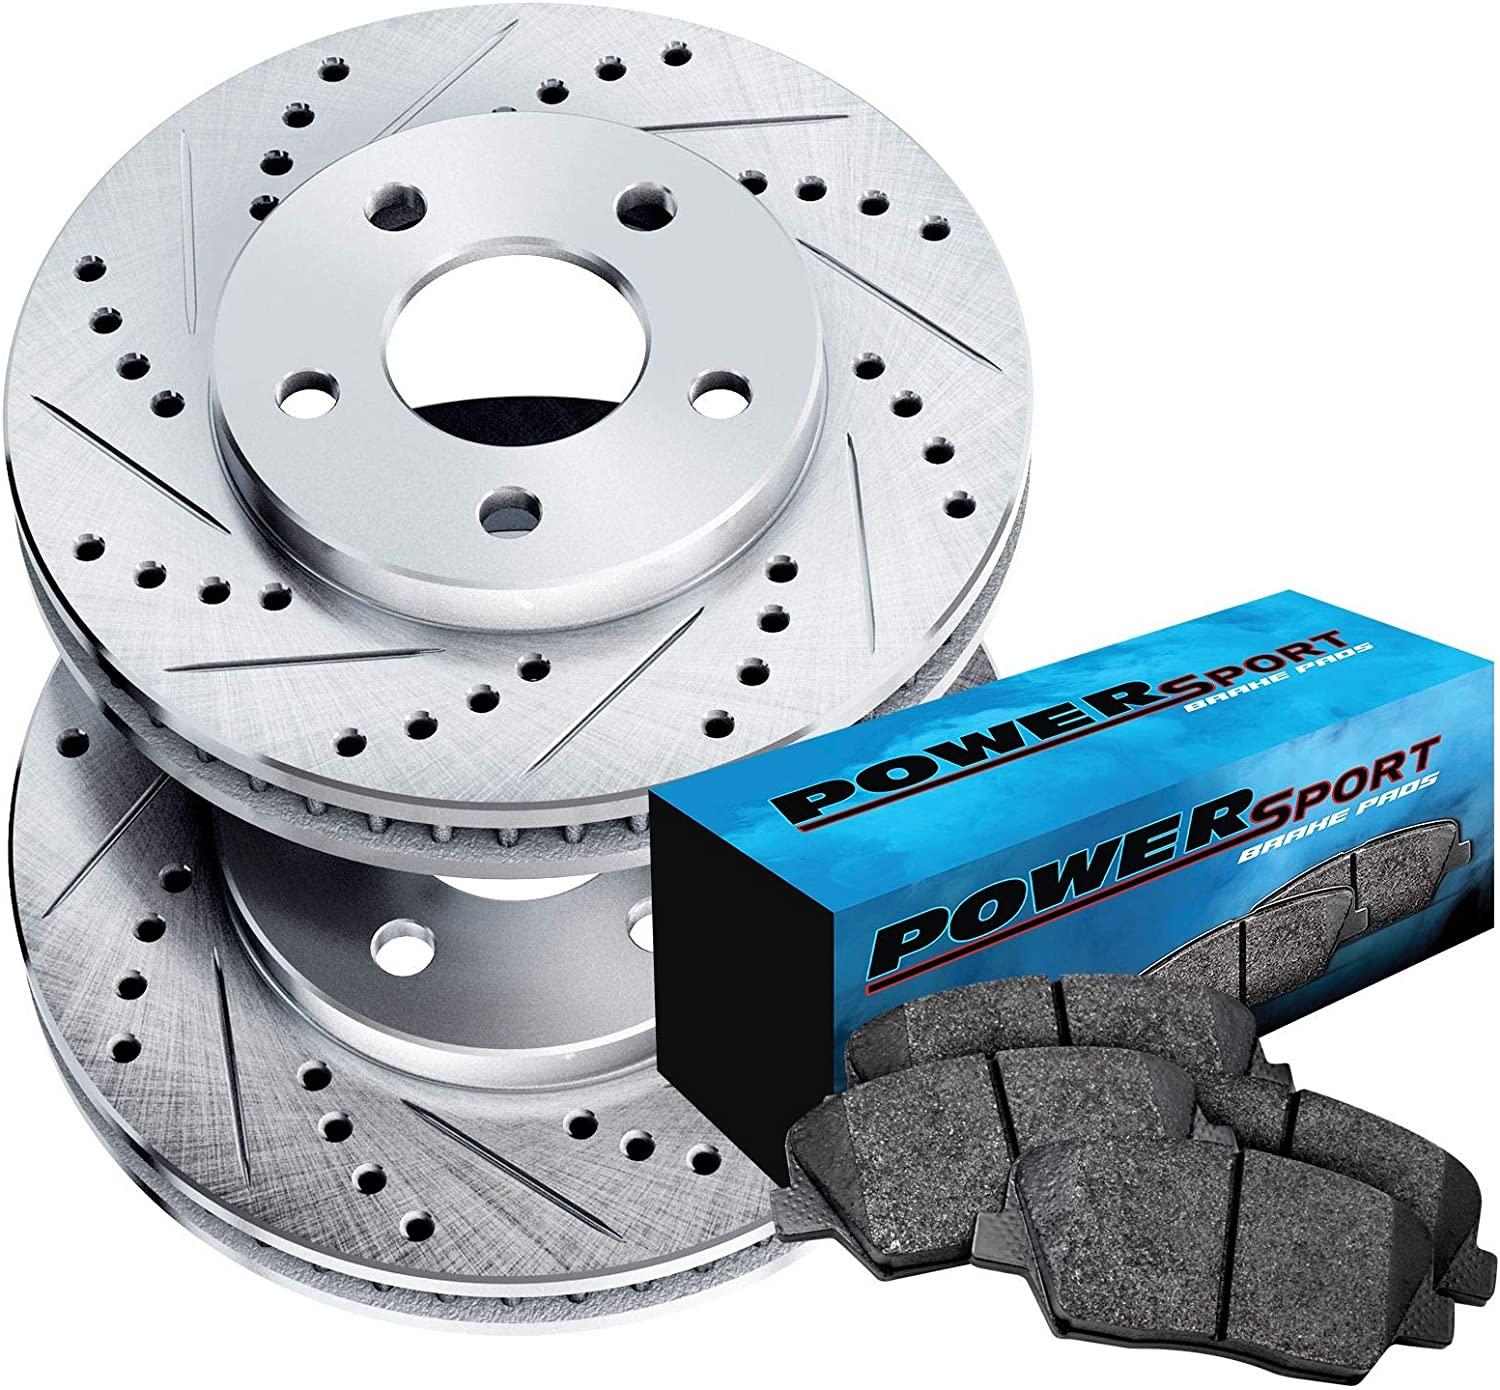 Fits: 2013 13 Fits Nissan Rouge and Rear OE Series Rotors + Metallic Pads Max Brakes Front /& Rear Premium Brake Kit TA045443